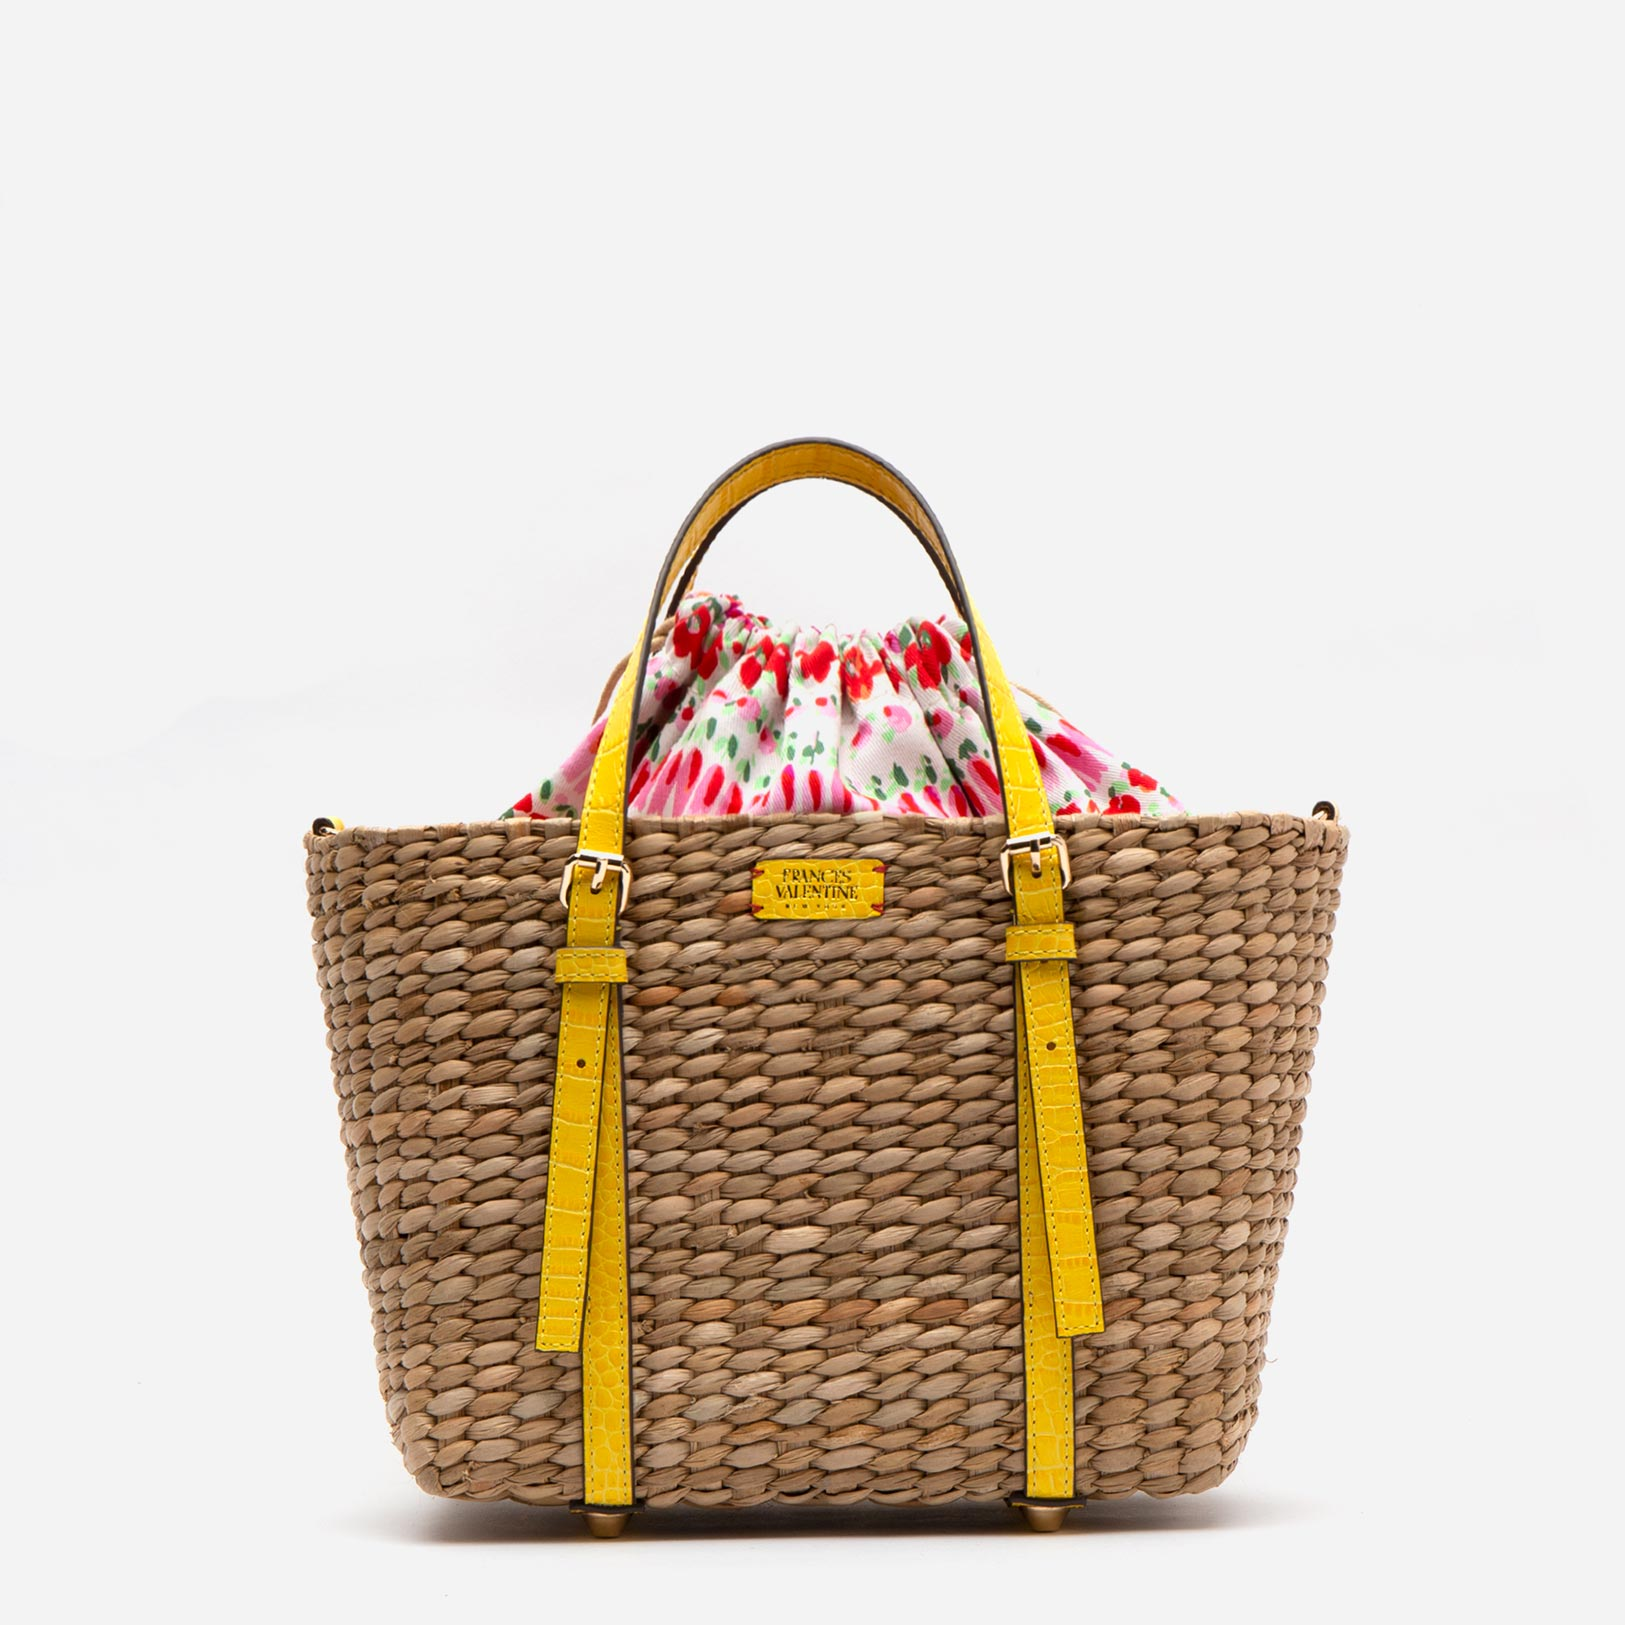 Small Woven Basket Tote Yellow Croc - Frances Valentine